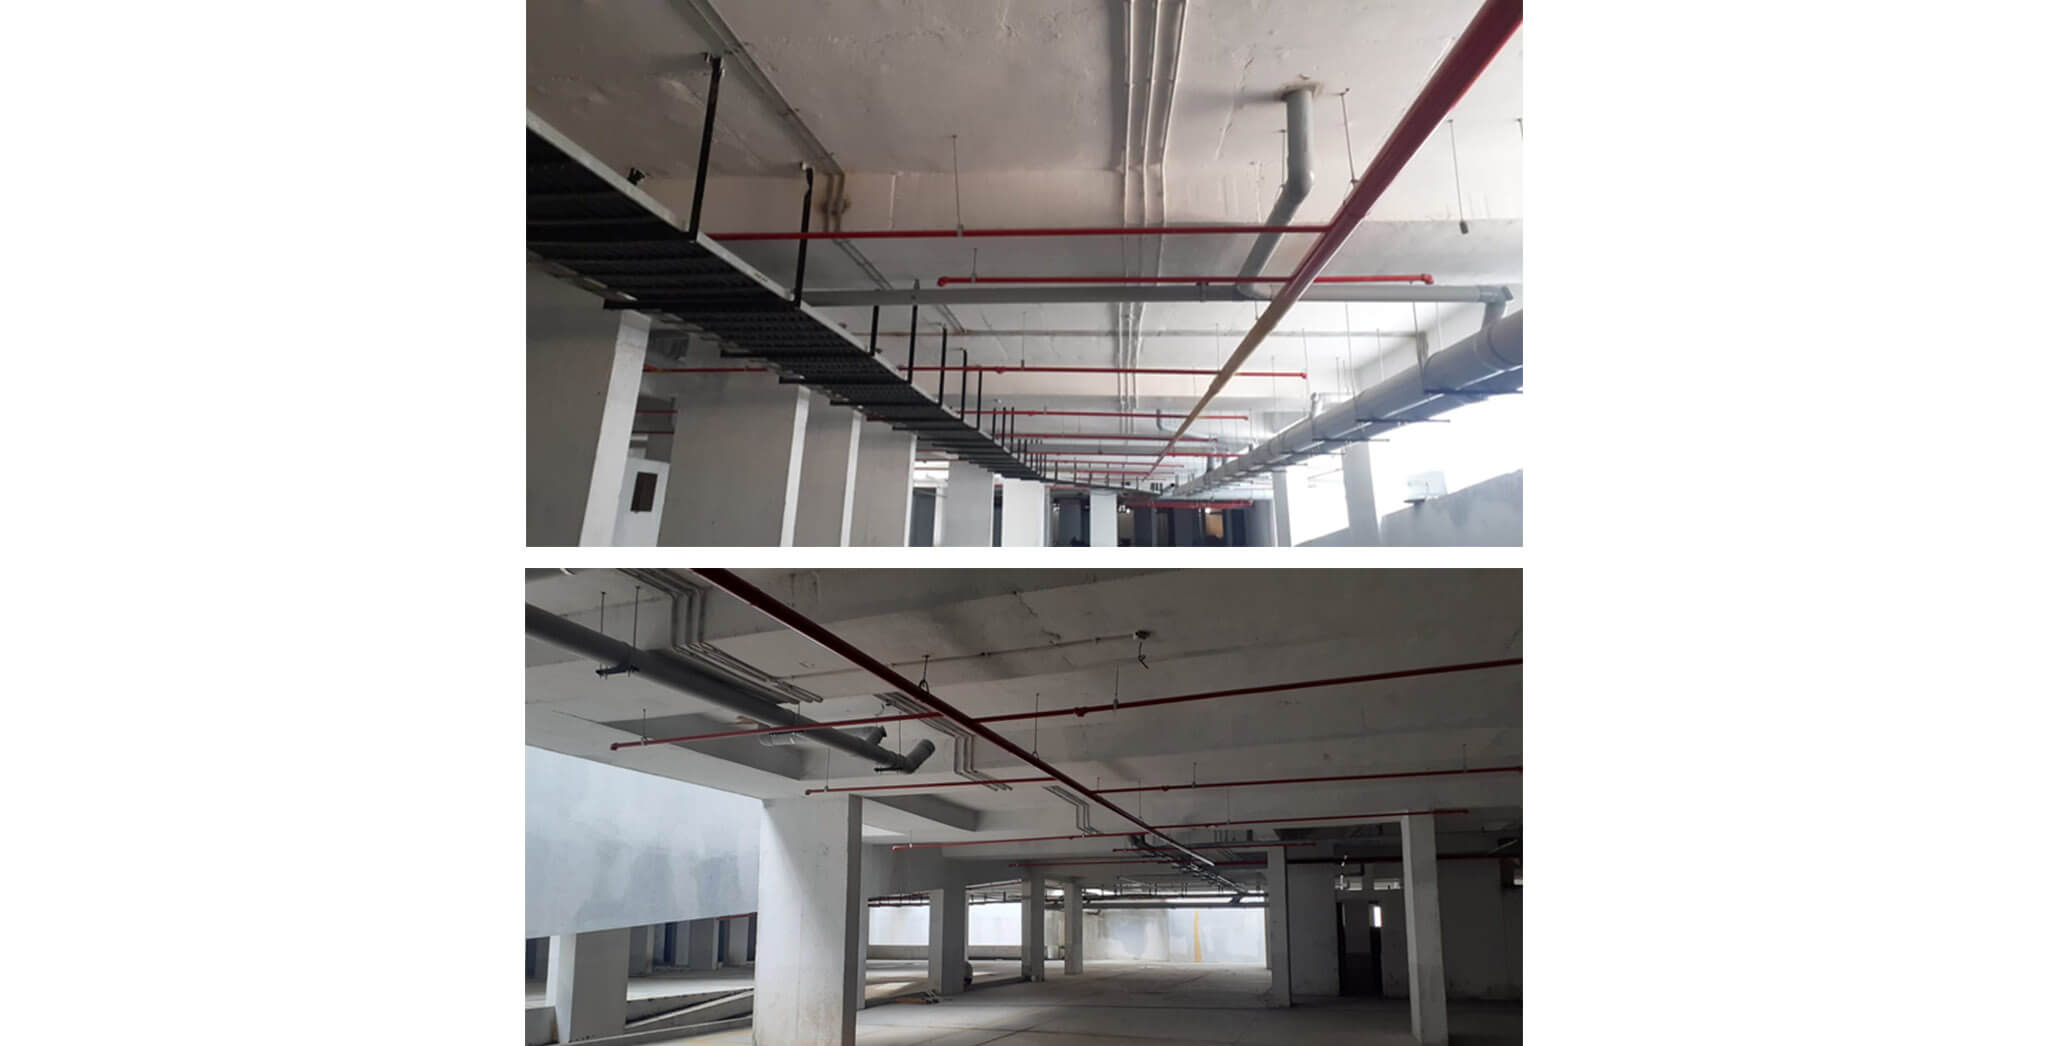 Mar 2020 - Basement: Fire fighting sprinkler lines, plumbing and electrical cable tray works completed